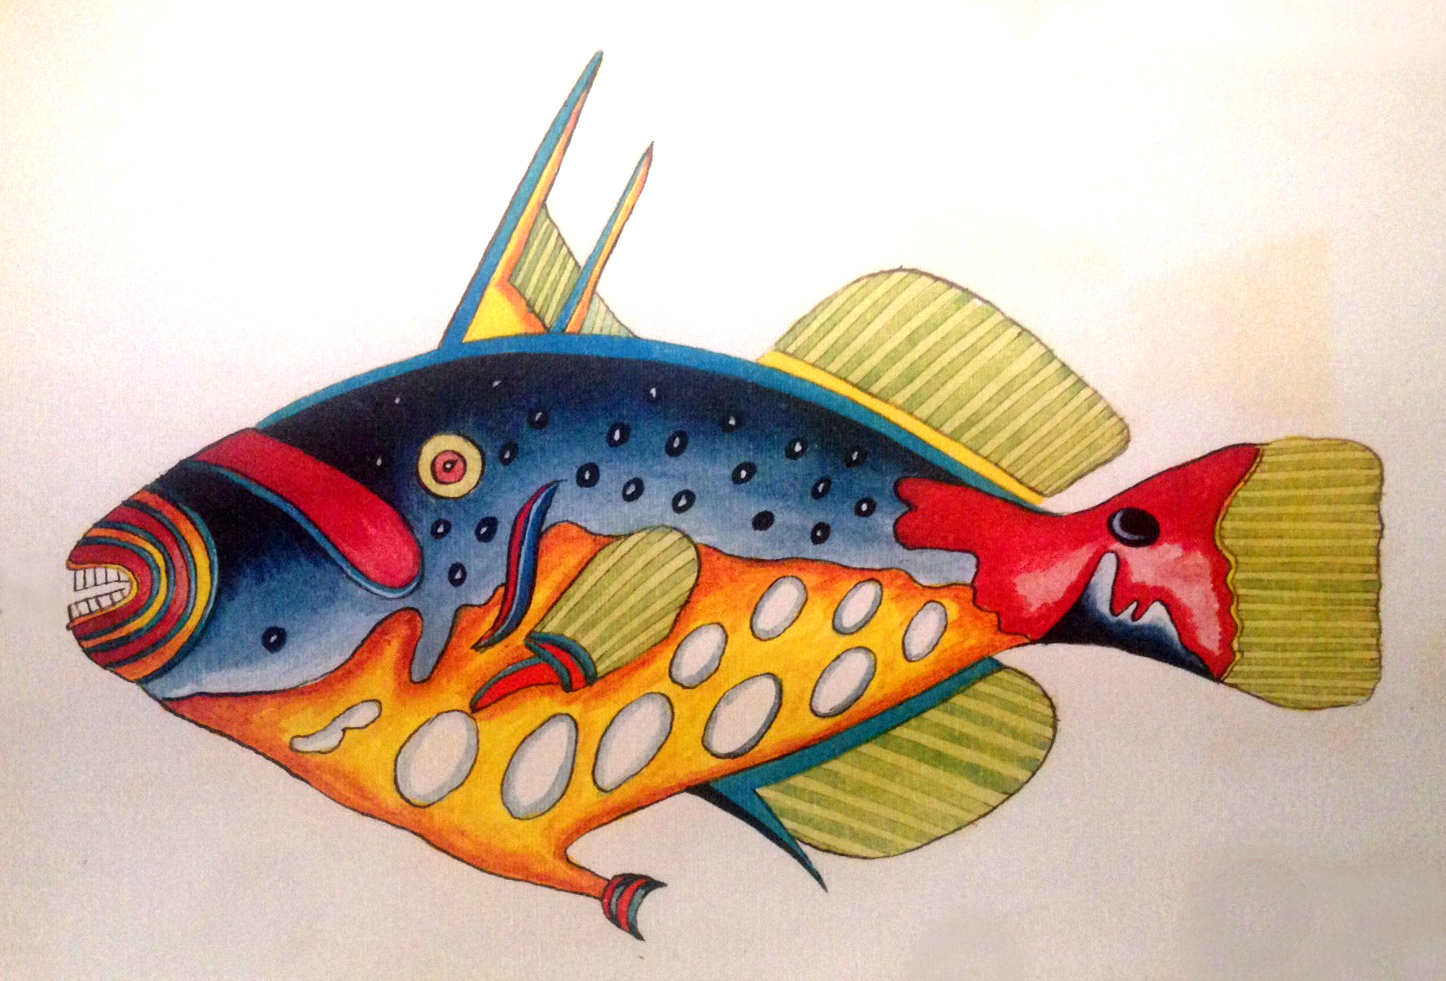 The Clown Triggerfish lends itself well to Fallours' aesthetic.